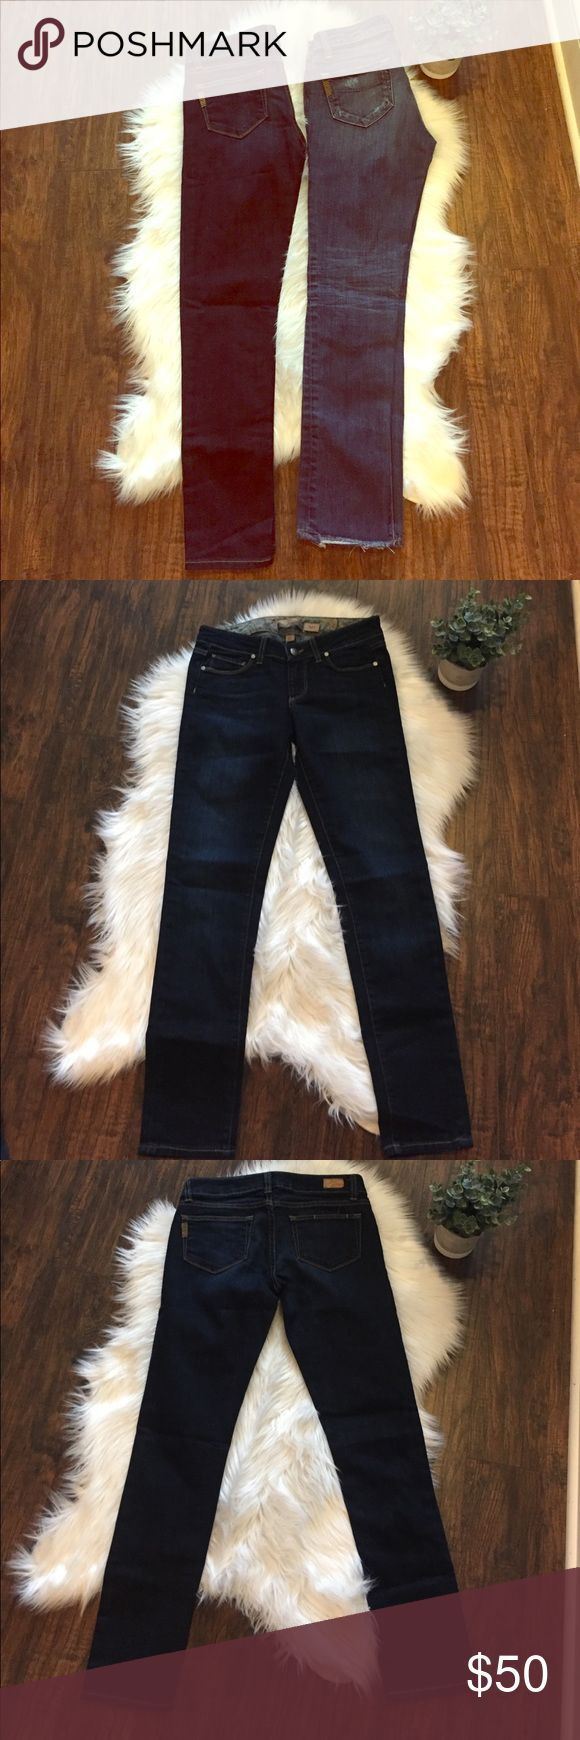 """•Paige• Jean Bundle Paige Jean Bundle. In Great Used Condition, Both Size 25. 2 Pairs of Designer Jeans Include (from left to right in pictures): 1. Paige, Dark Wash, Skyline, Inseam is About 27.5"""" 2. Paige, Factory Destroyed, Skyline Ankle Peg, Inseam is About 27.5"""" Paige Jeans Jeans Skinny"""